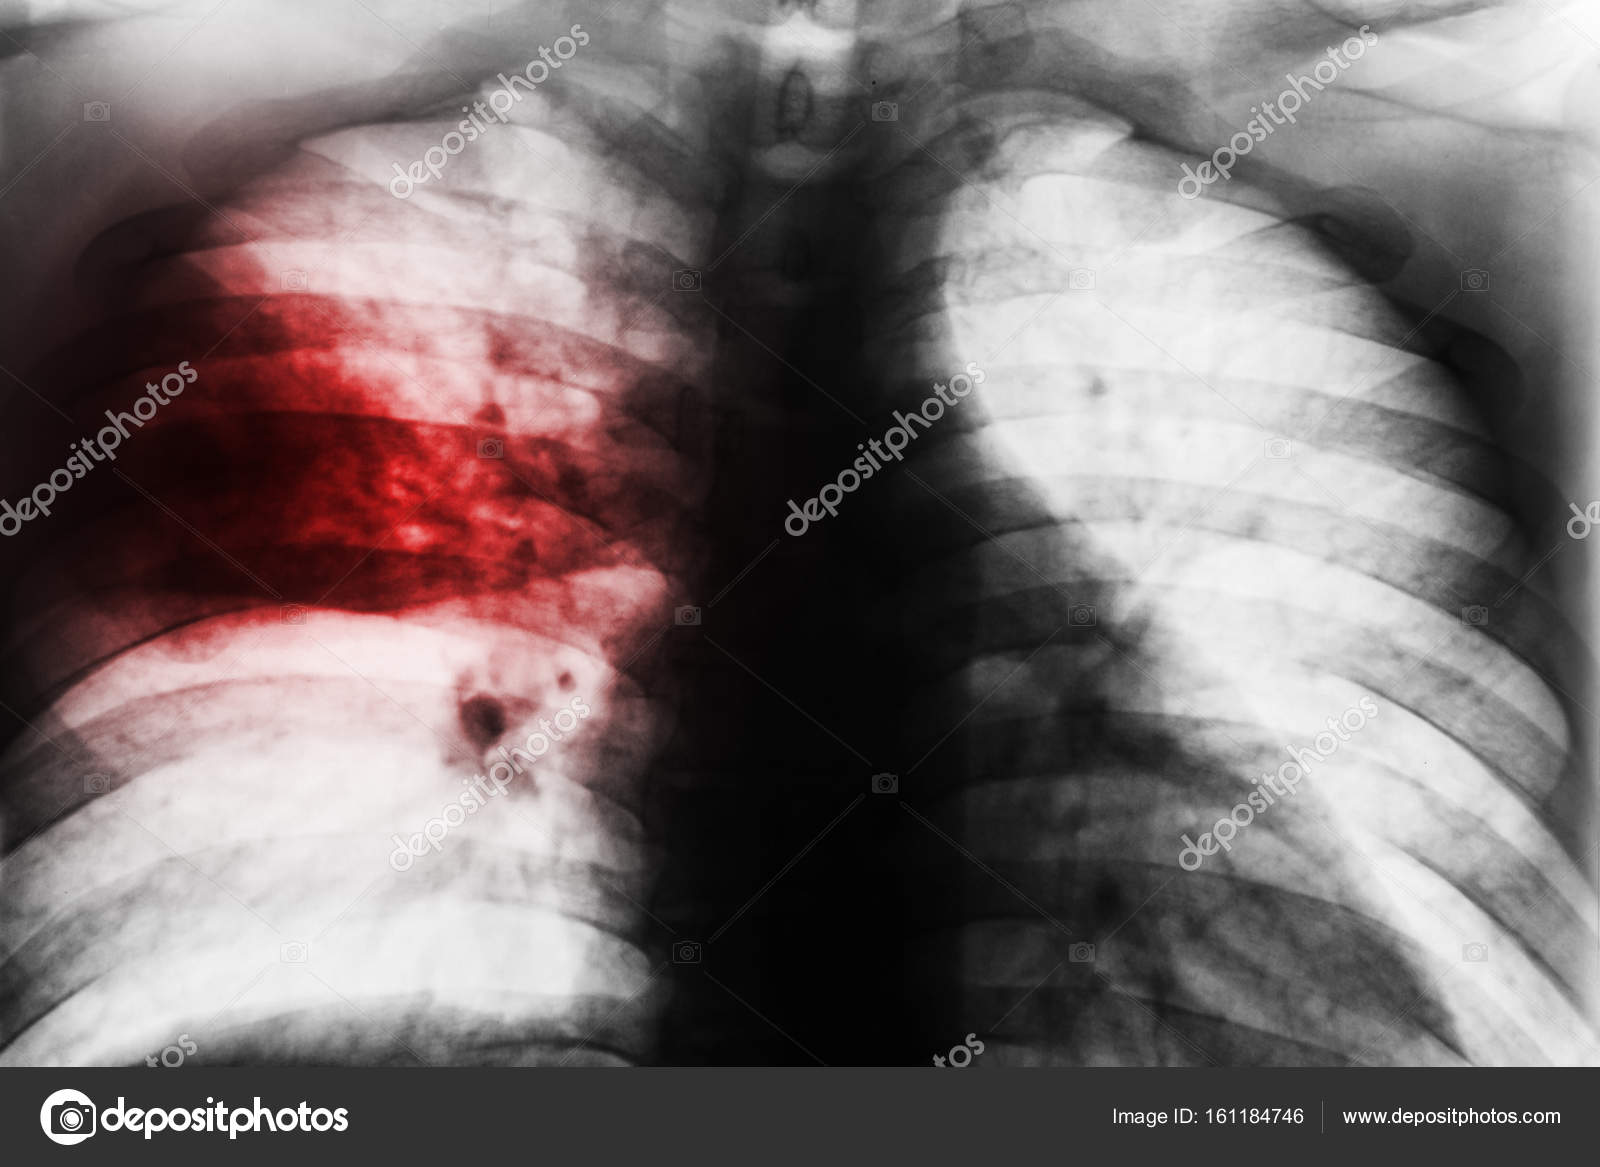 Lobar Pneumonia   Film chest x-ray show patchy infiltrate at